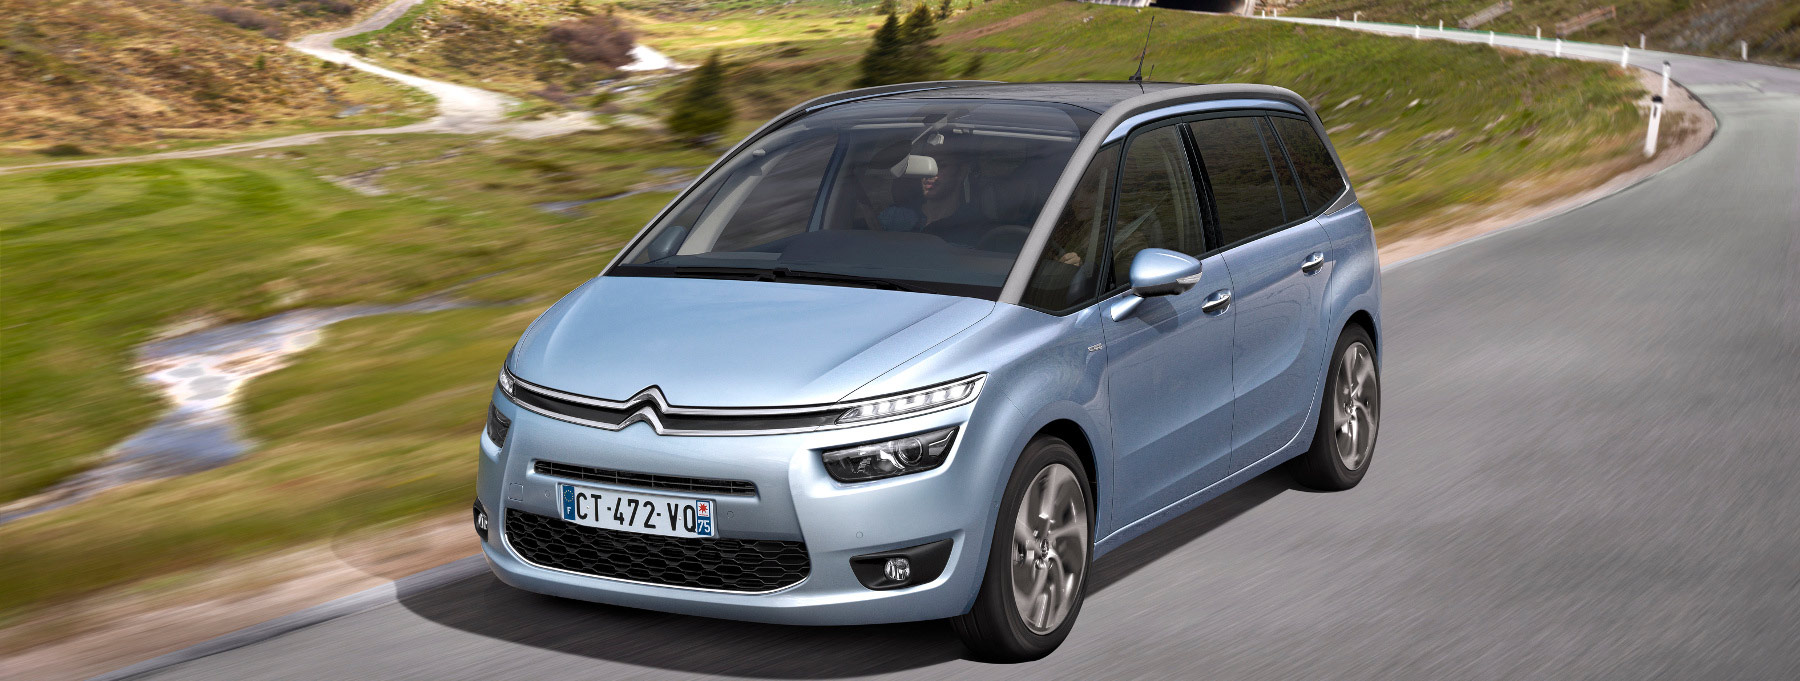 1800x681-Electric-Stability-Control